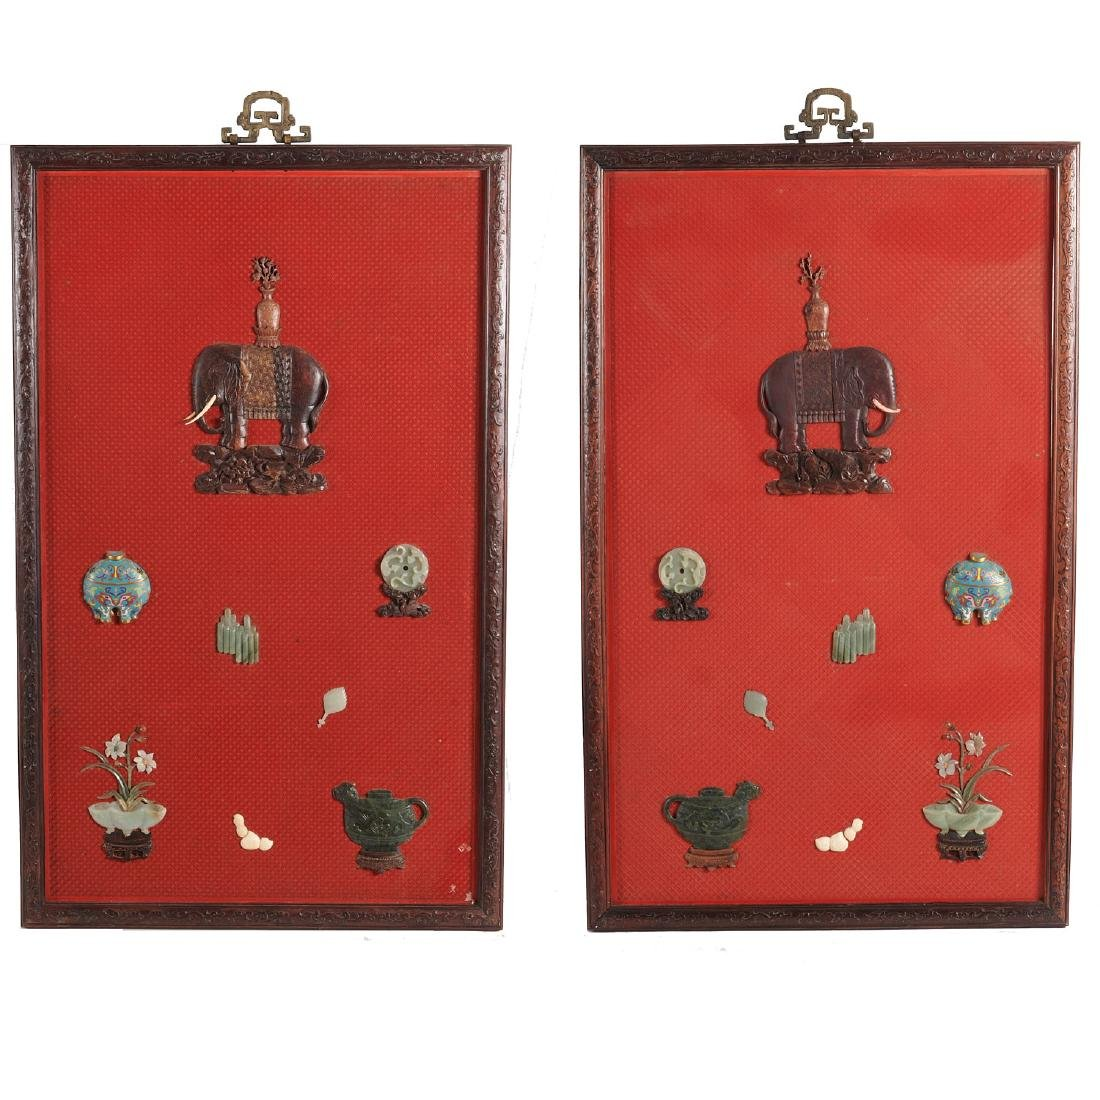 Pair Chinese inlaid cinnabar lacquer panels